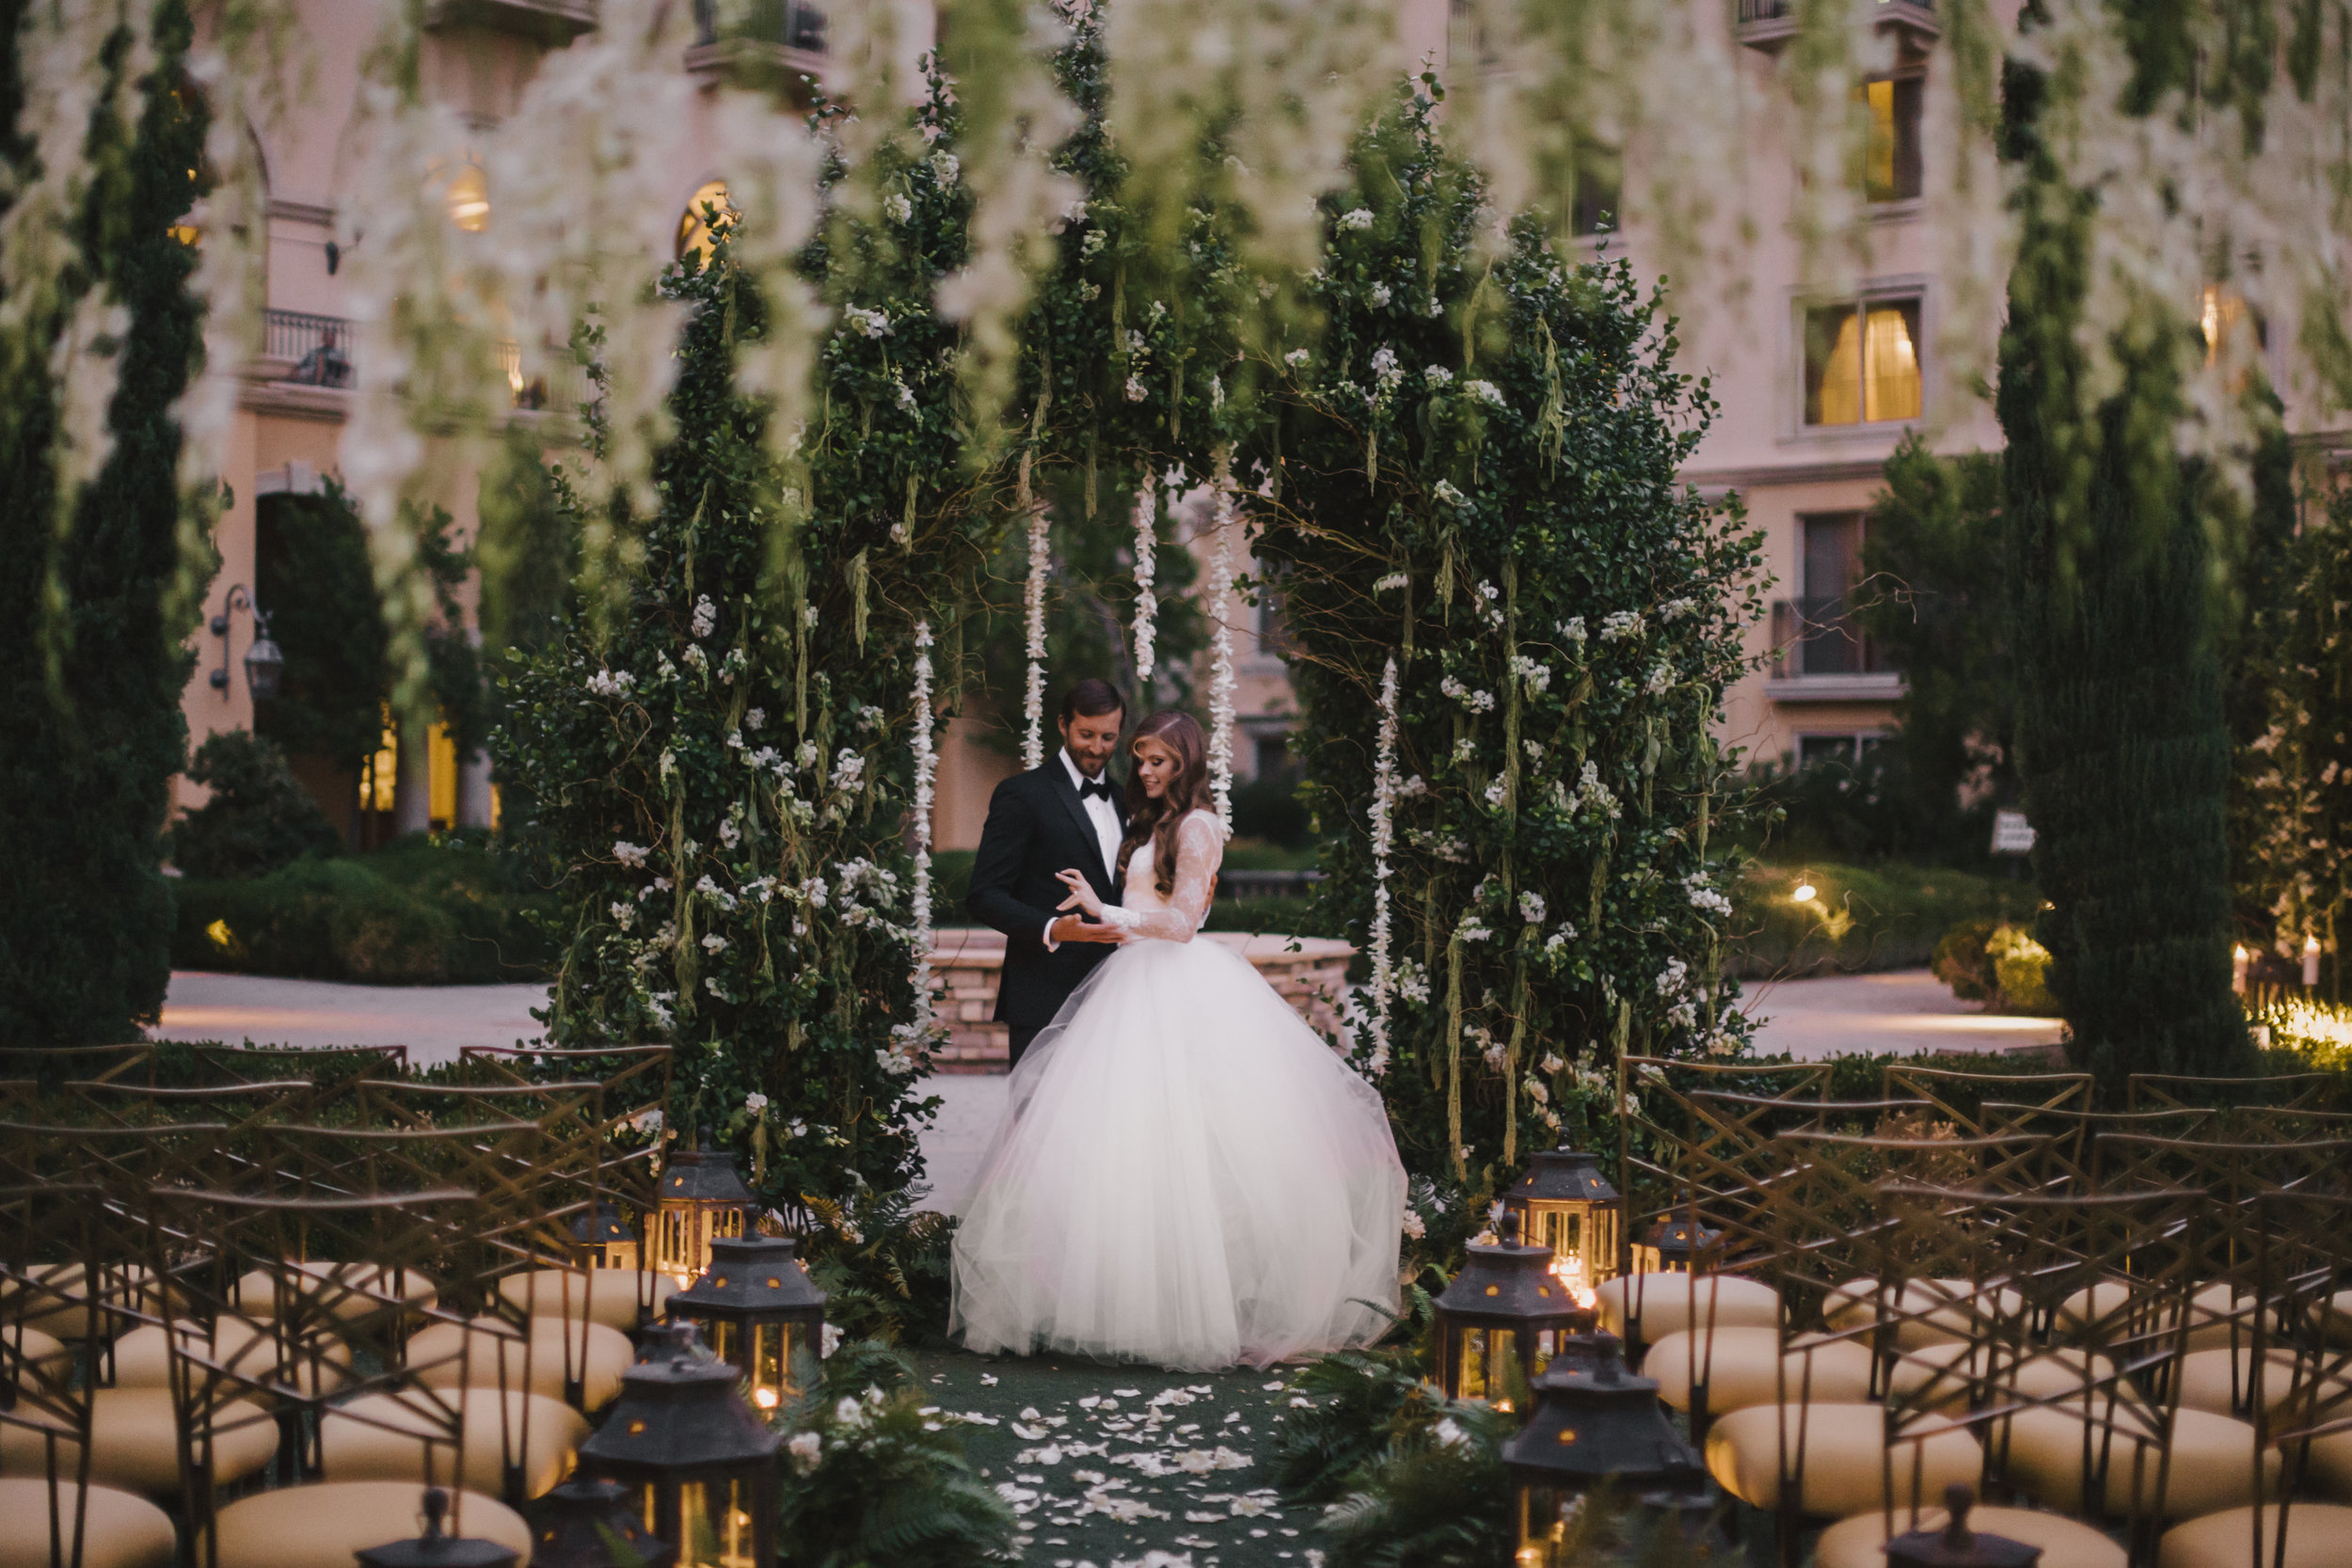 Couples wanting an enchanted forrest lean towards greenery and flowing white flowers in a beautiful outdoor wedding. Florals by Javier Valentino. Photo by Adam Trujillo.